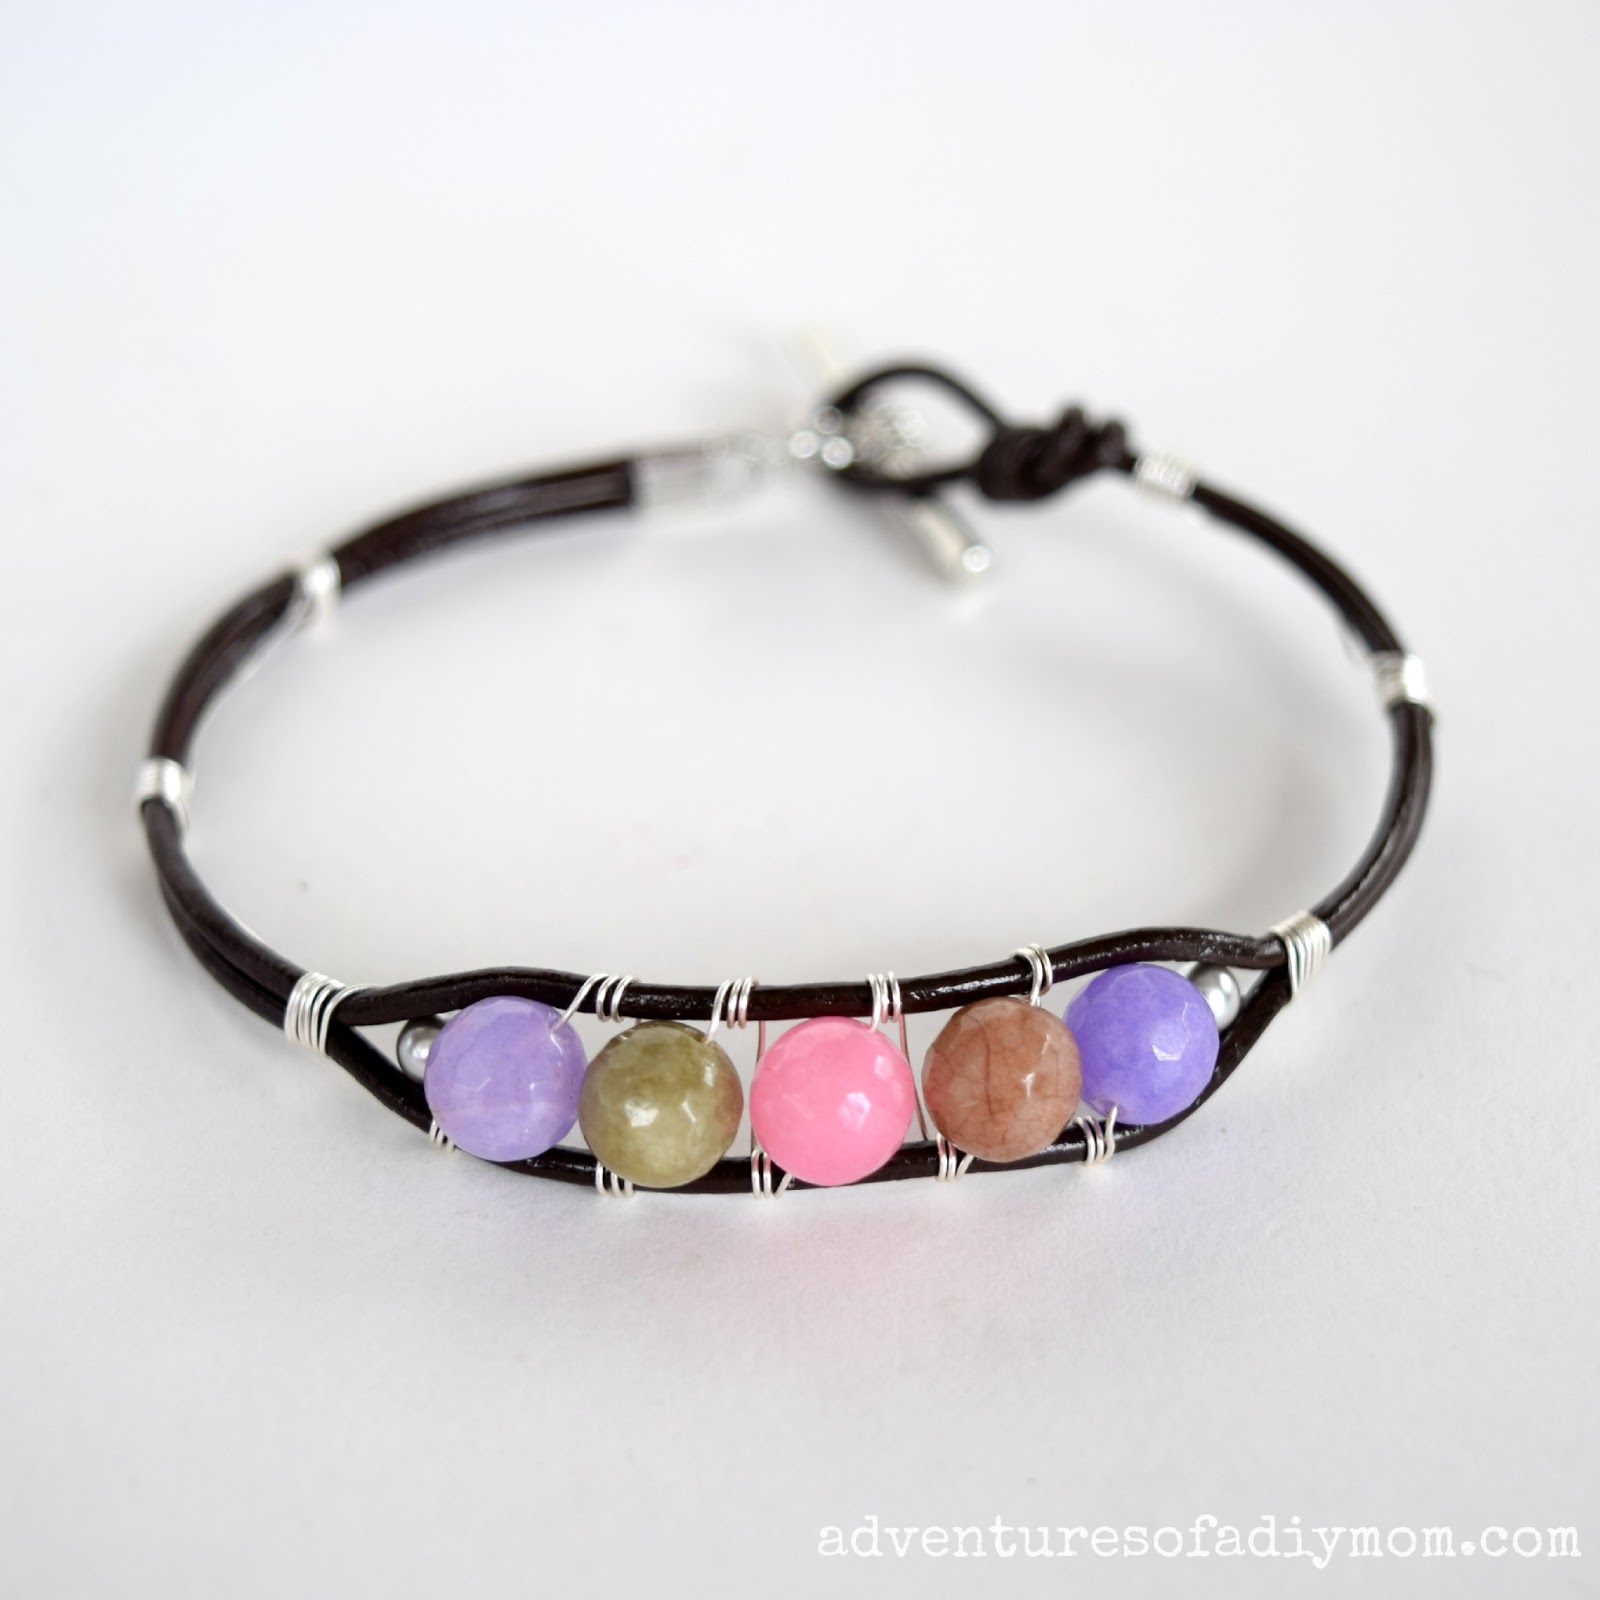 Leather Cord and Bead Bracelet - Adventures of a DIY Mom